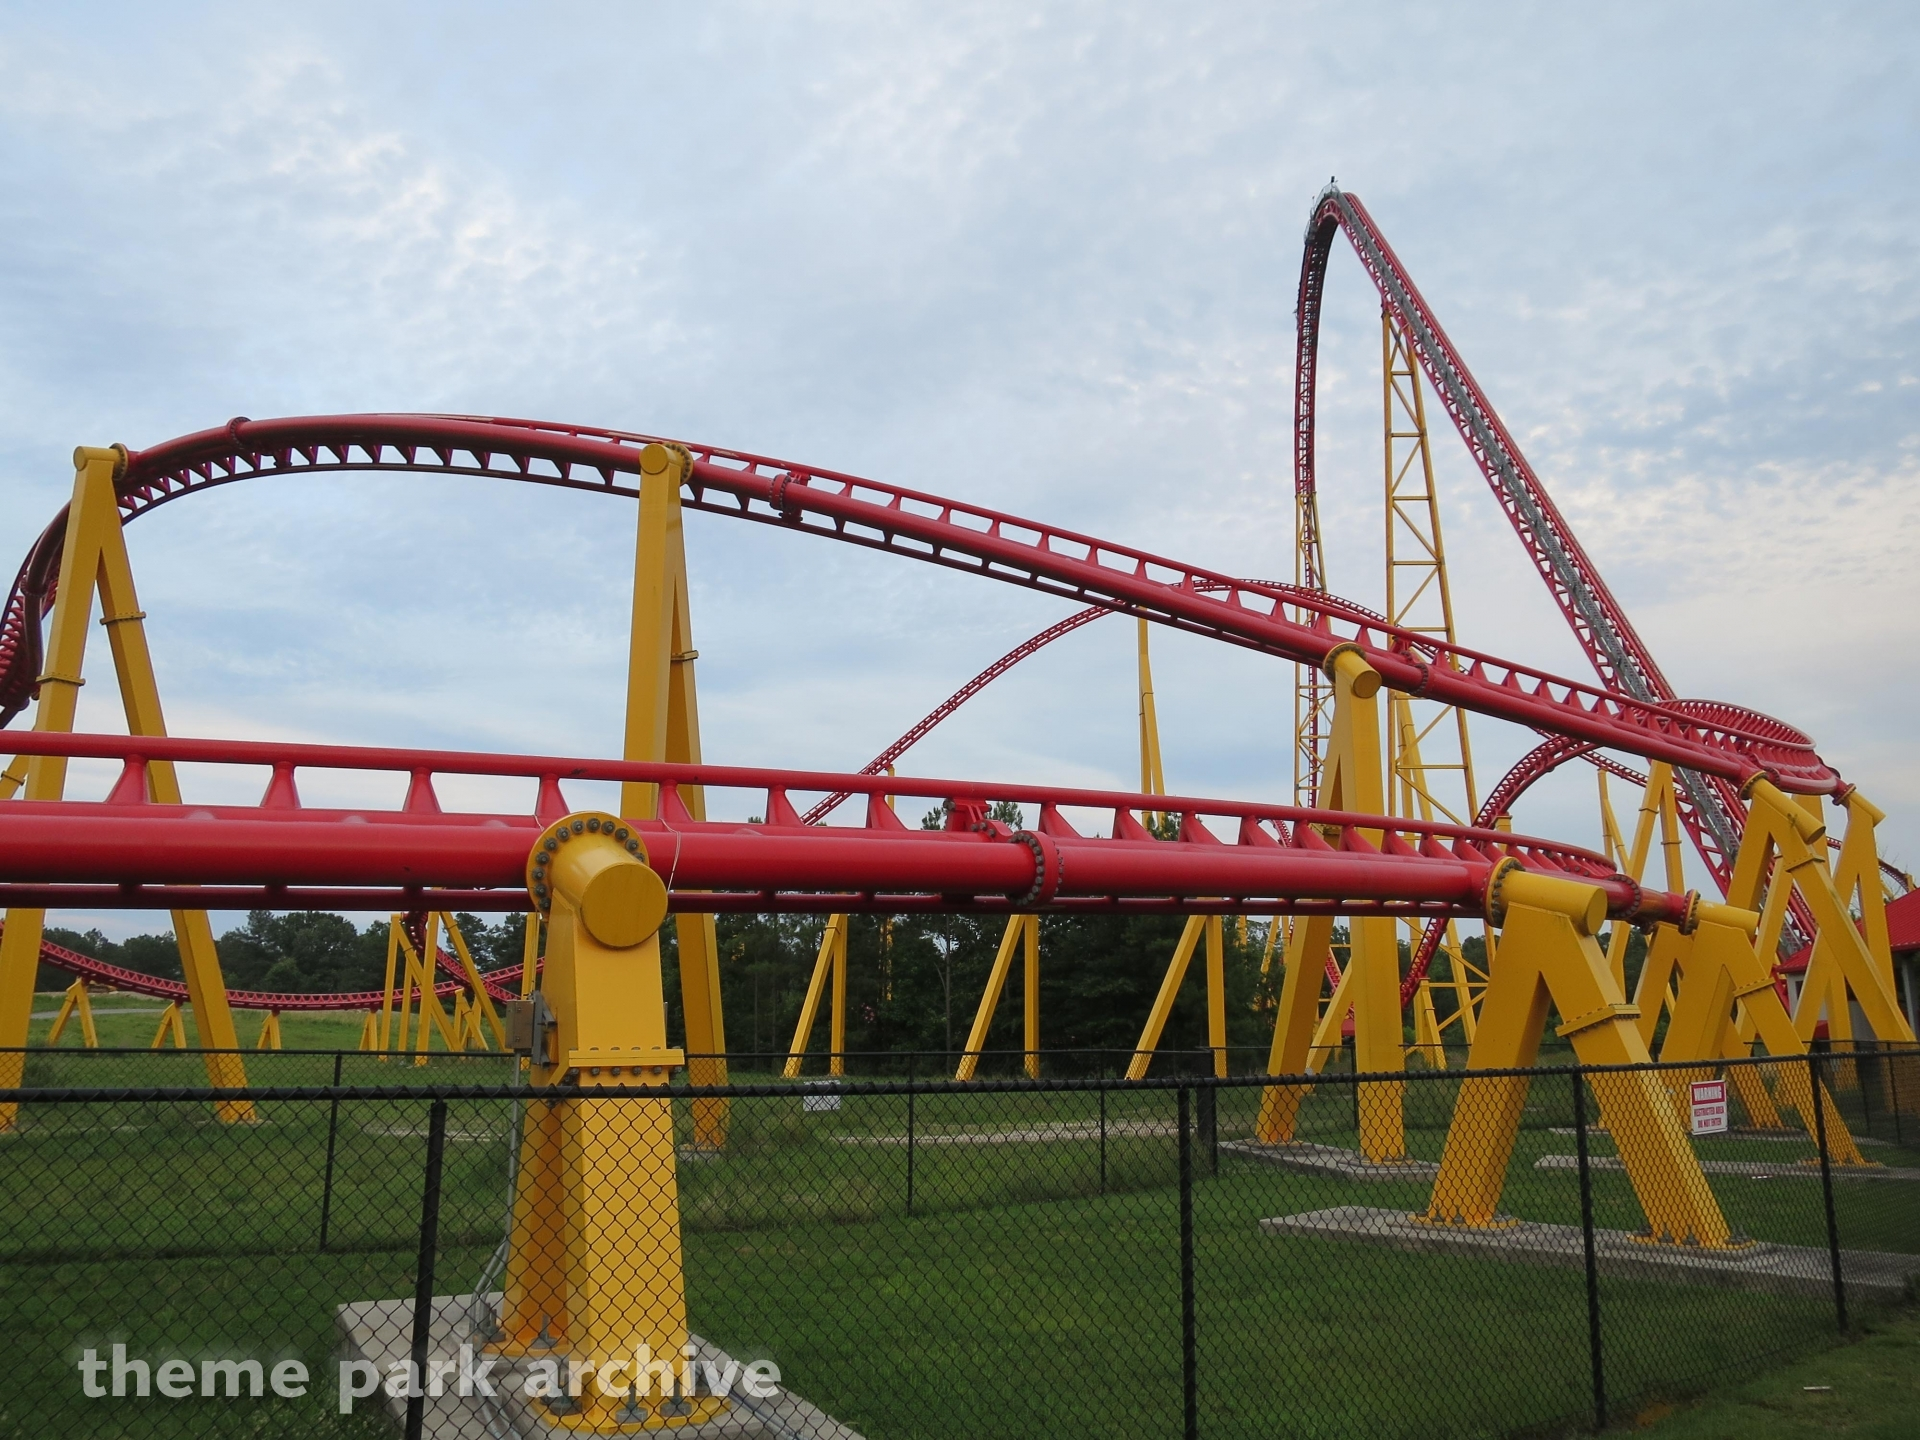 Intimidator 305 at Kings Dominion | Theme Park Archive